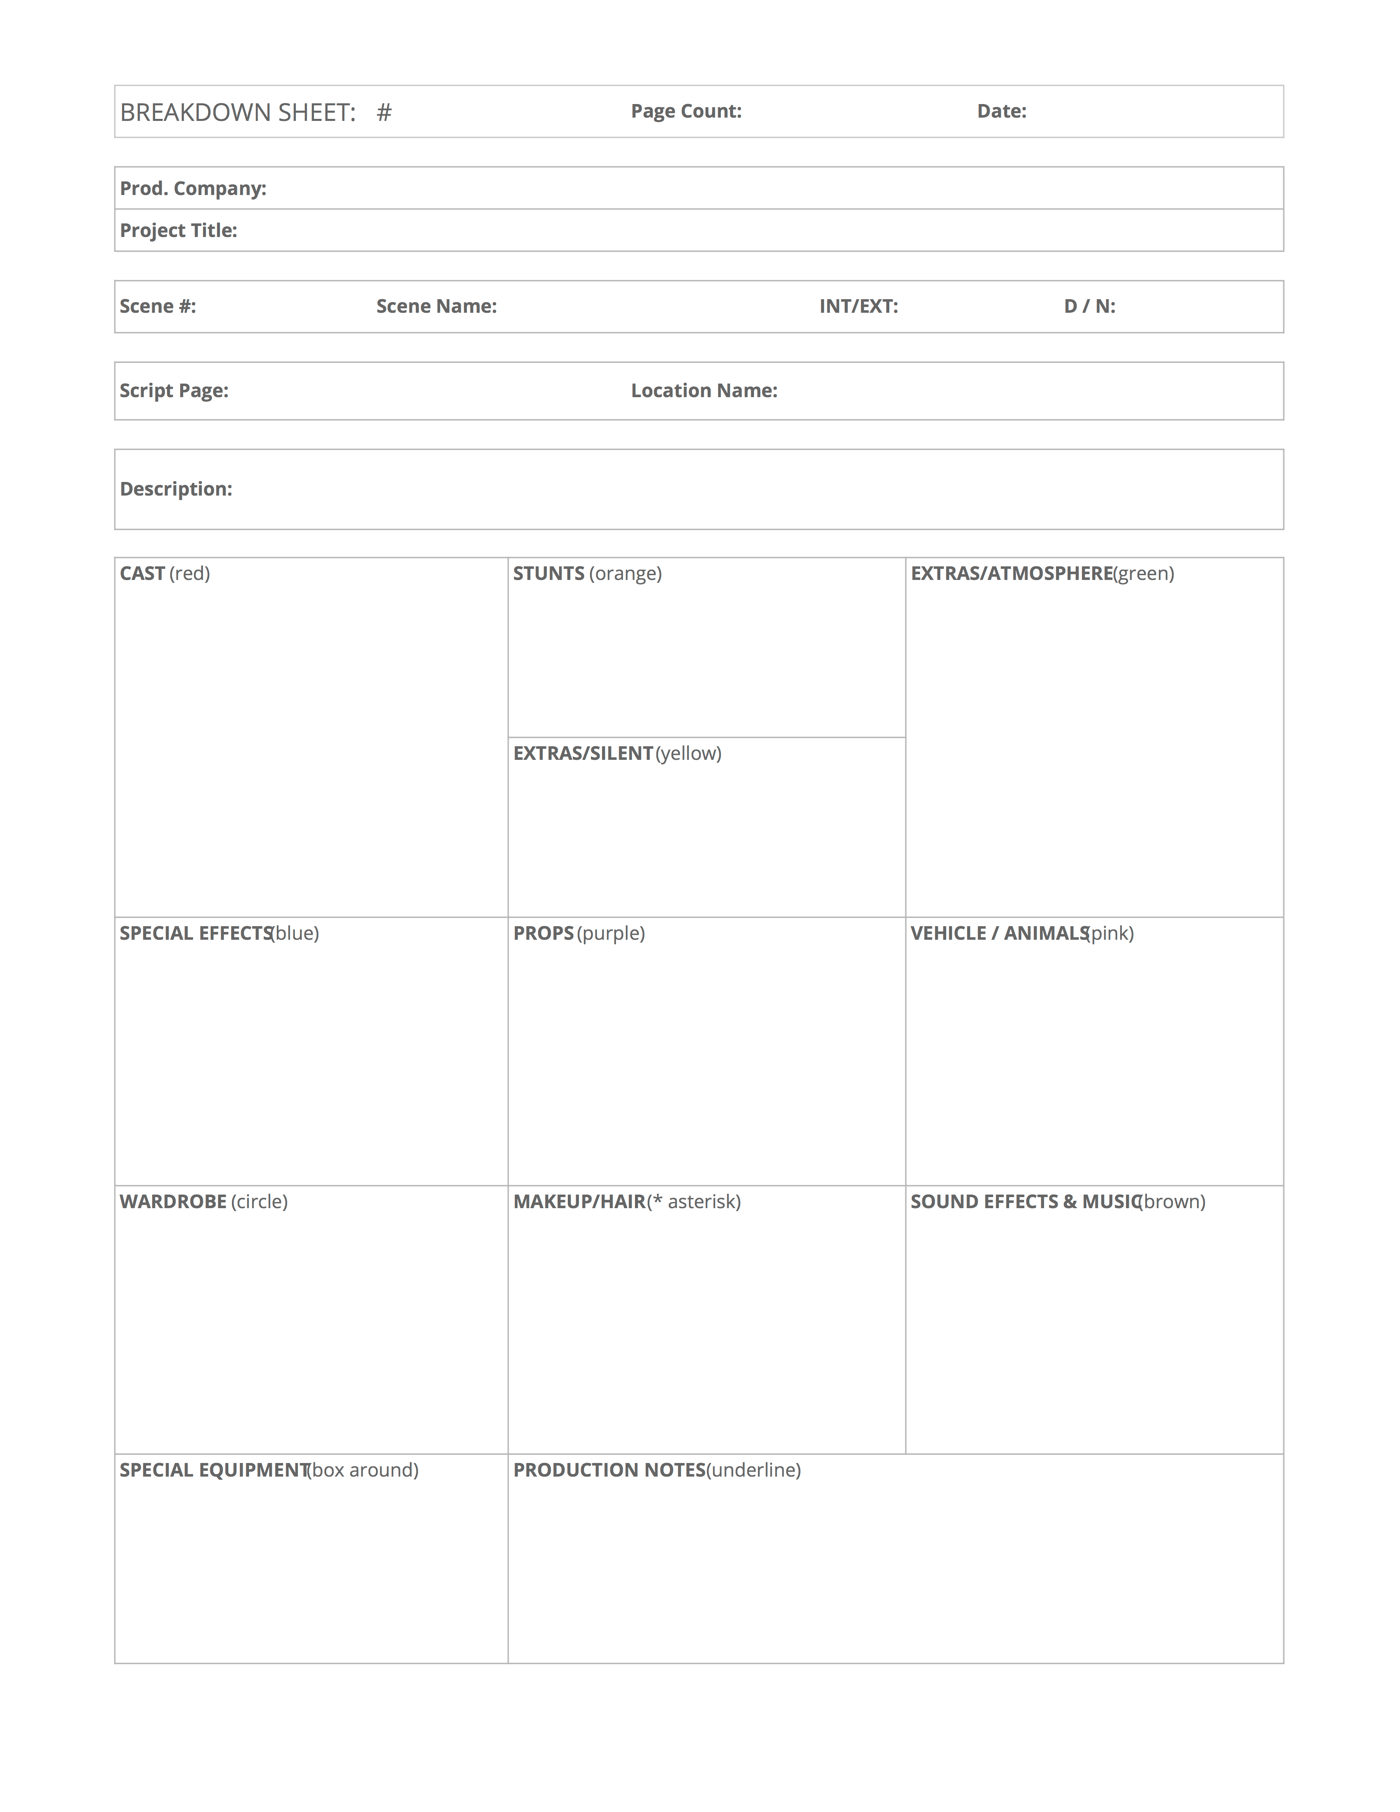 Download free script breakdown sheet template for Free movie script template